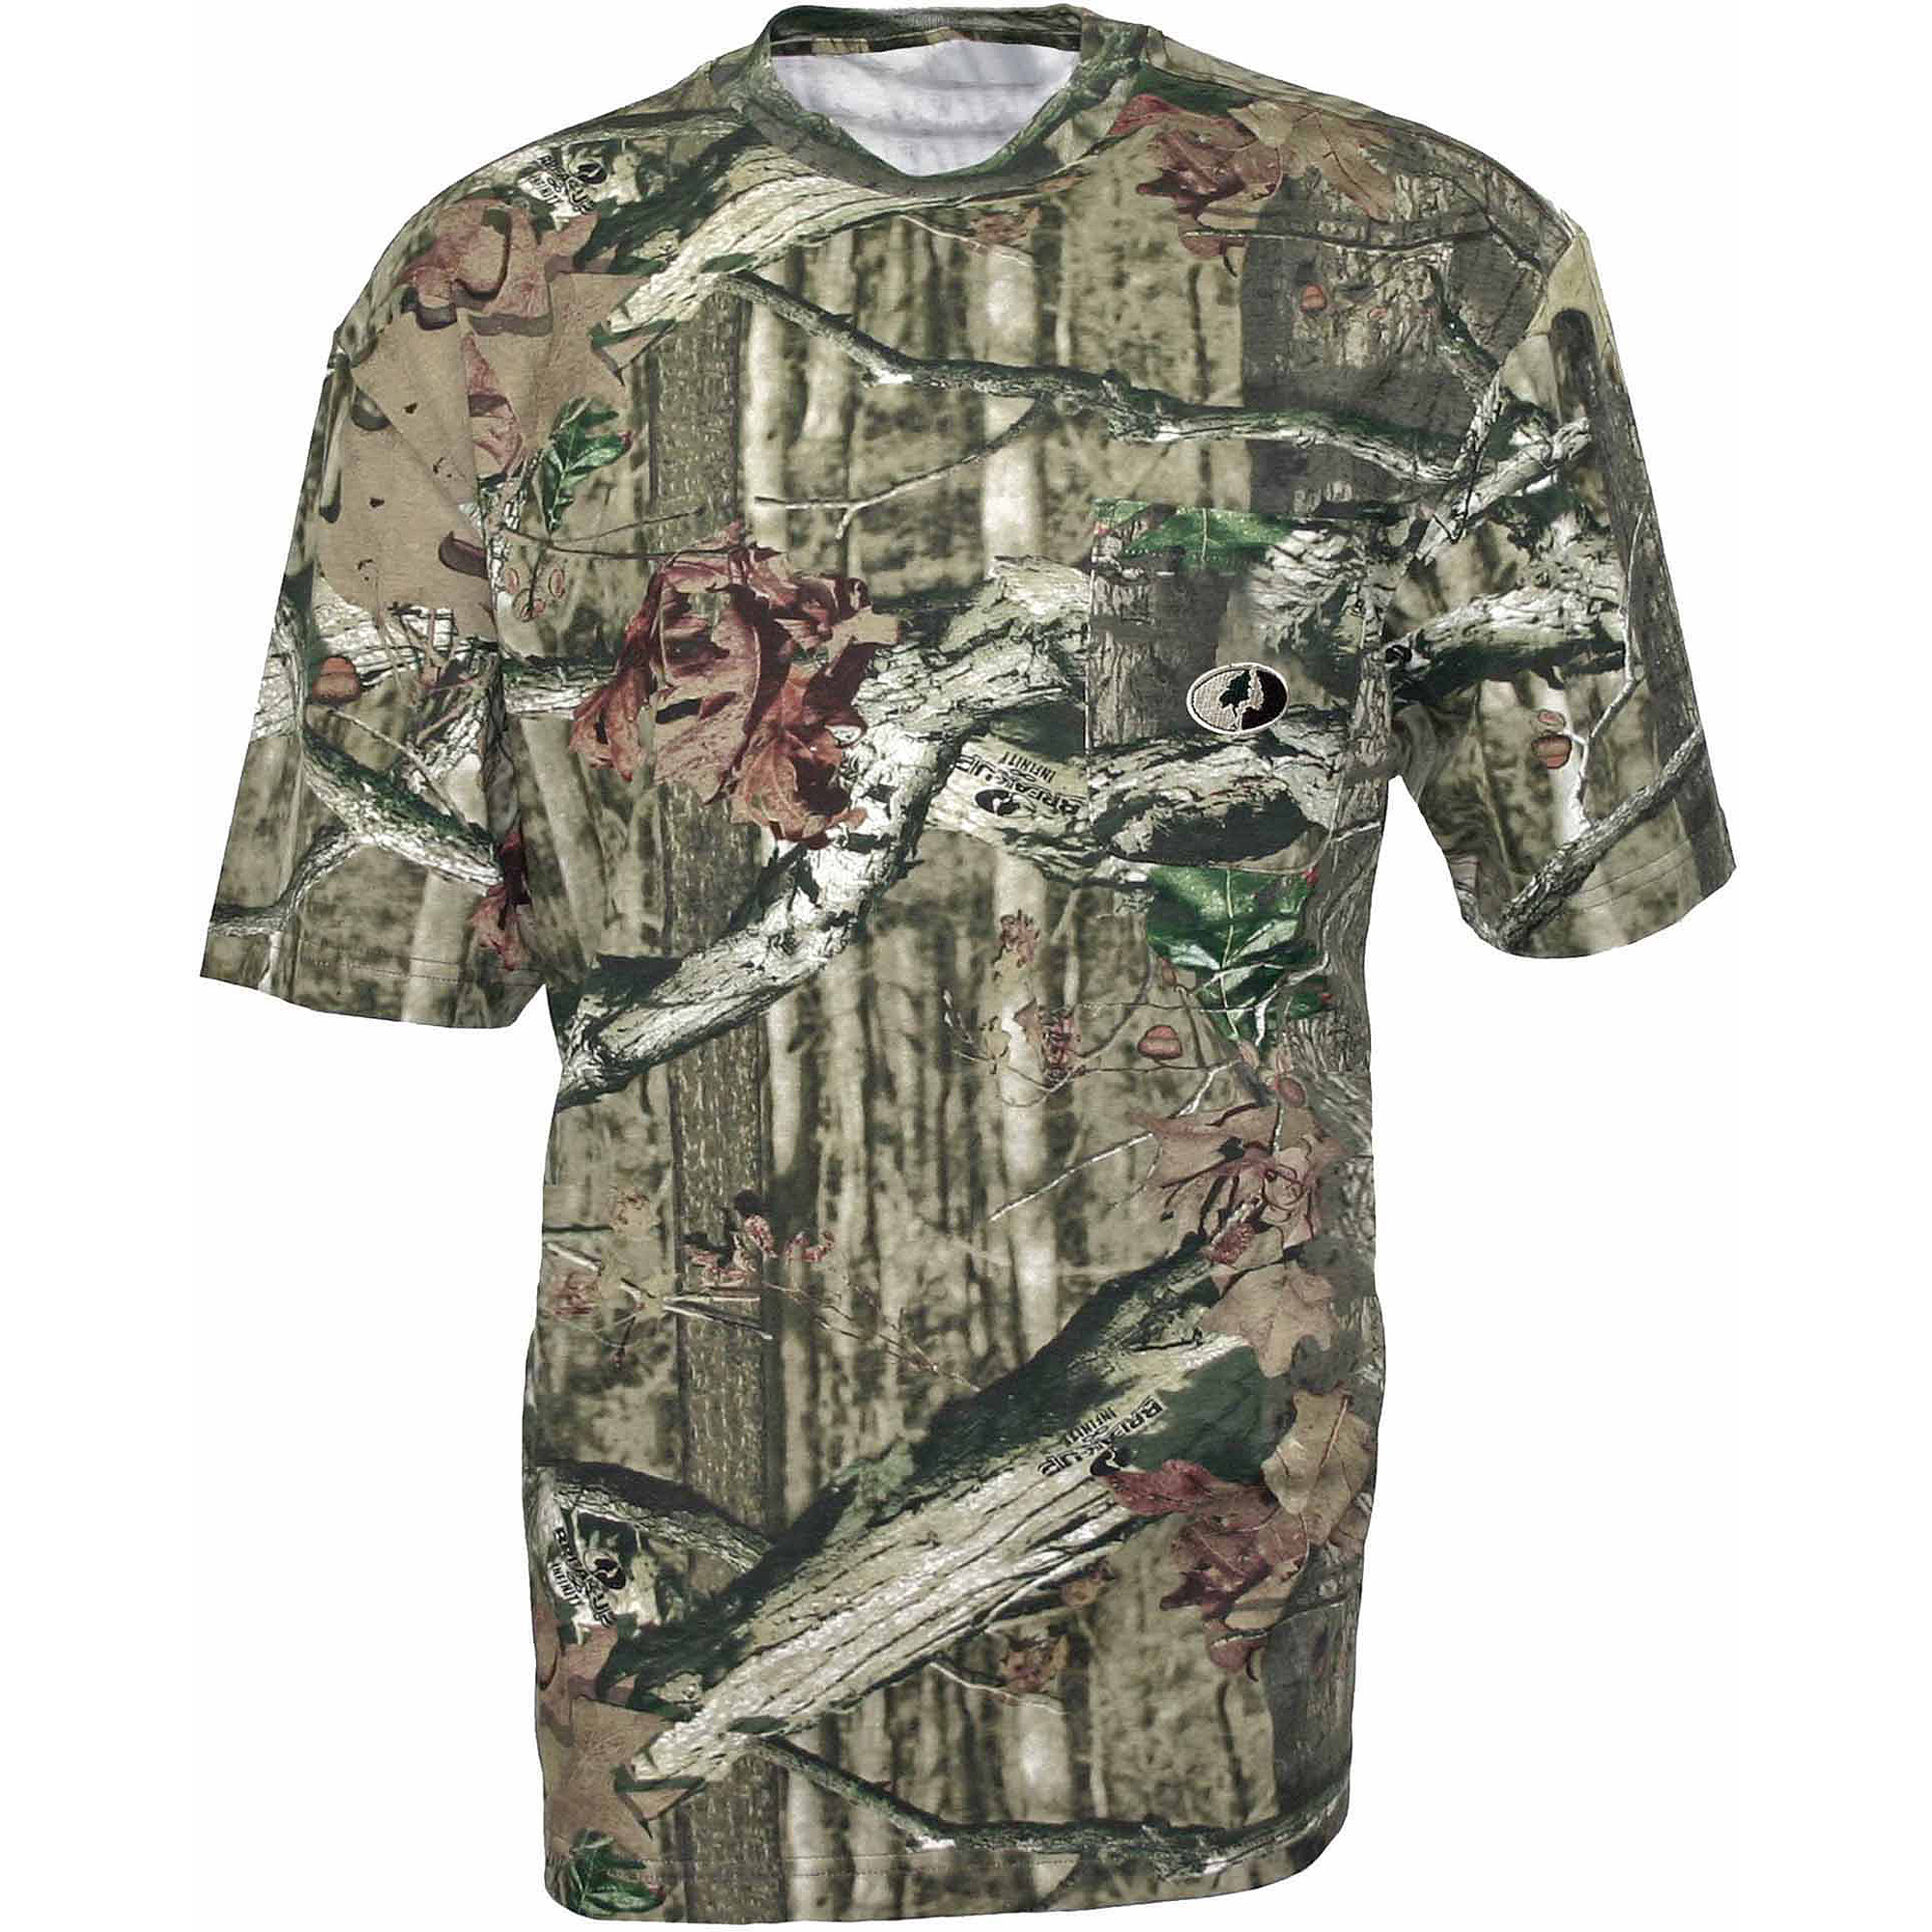 Mossy Oak Men's Short-Sleeve Pocket Tee, Camo